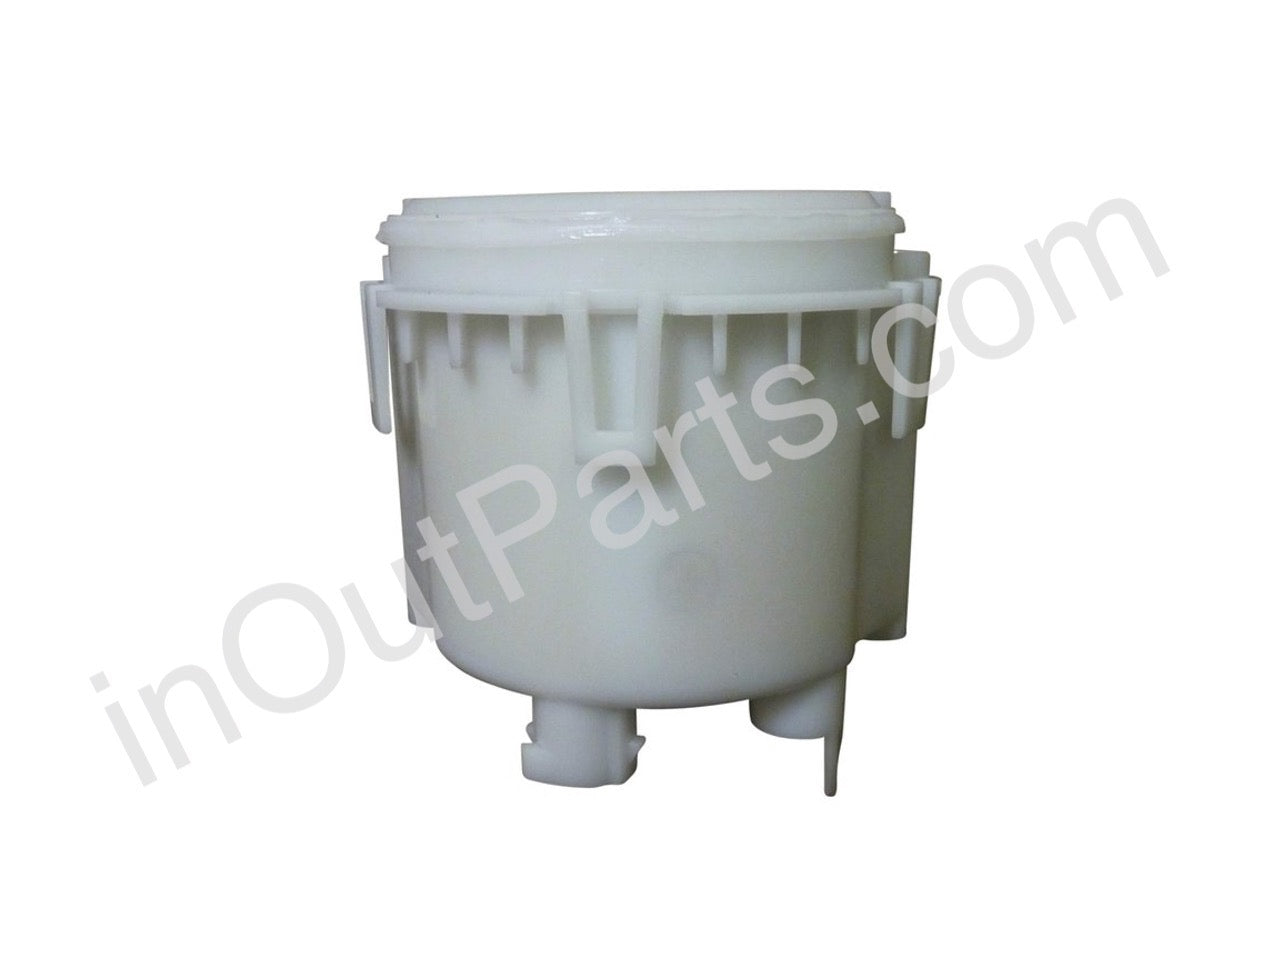 Fuel Filter Fits Toyota Harrier Kluger 1mzfe 2azfe 2003 2004 2005 Camry Location 2006 2007 2008